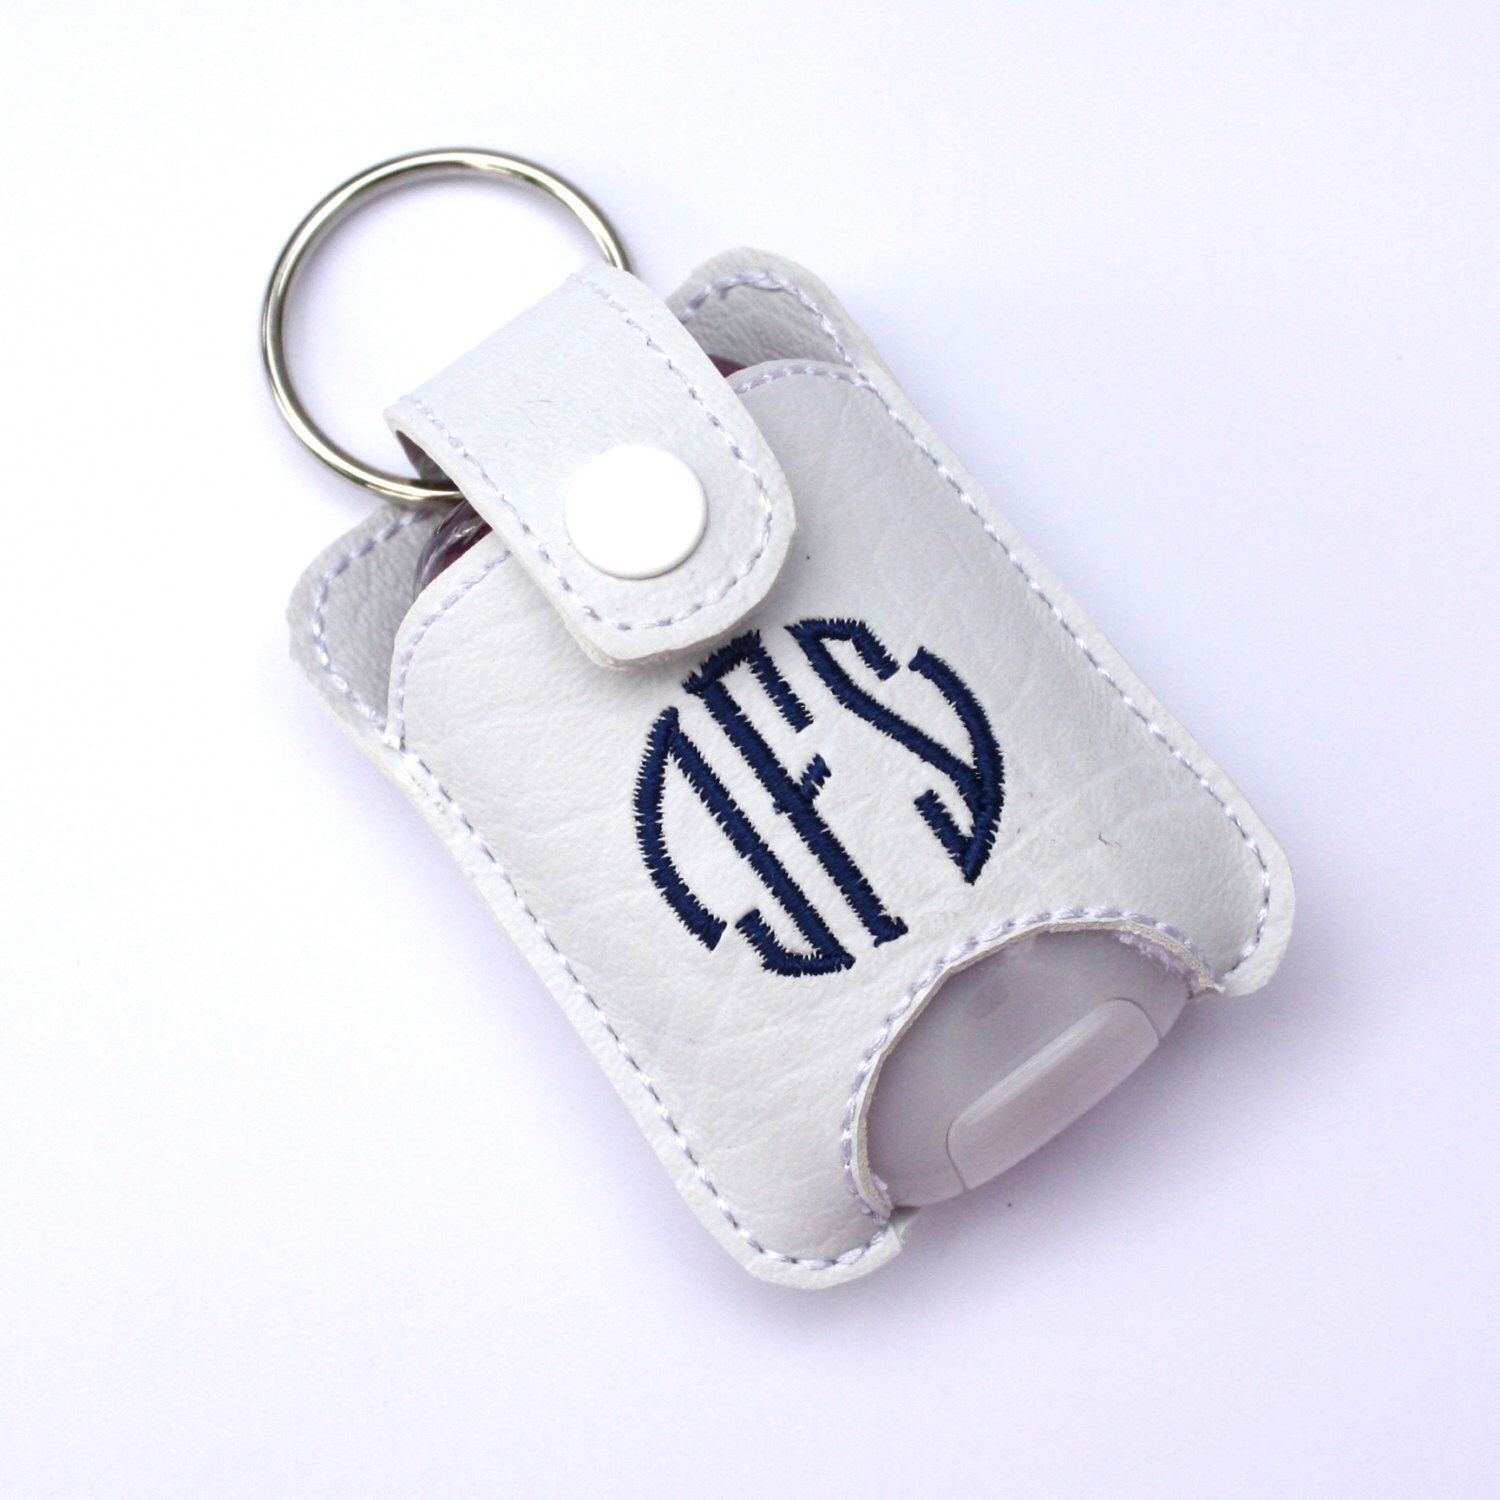 Pin By P Delgado On Purses Bags Hand Sanitizer Holder Monogram